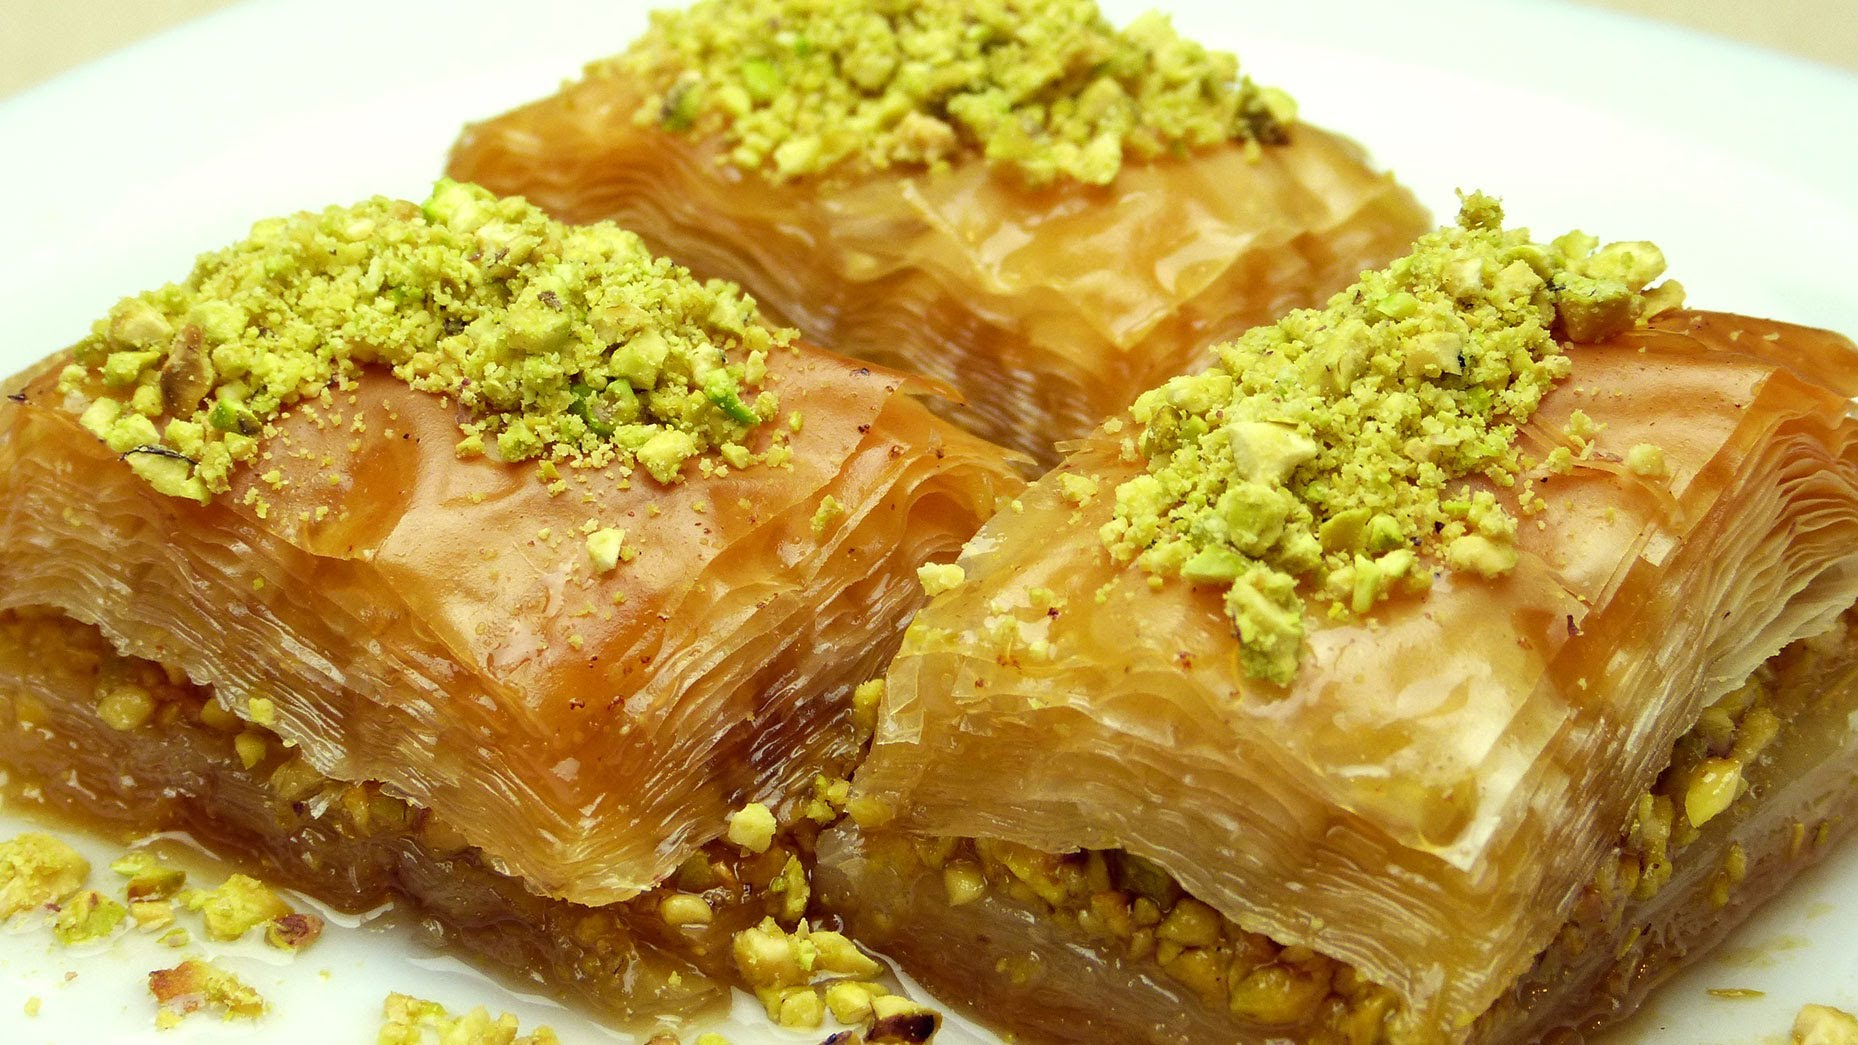 Baklava Turkey